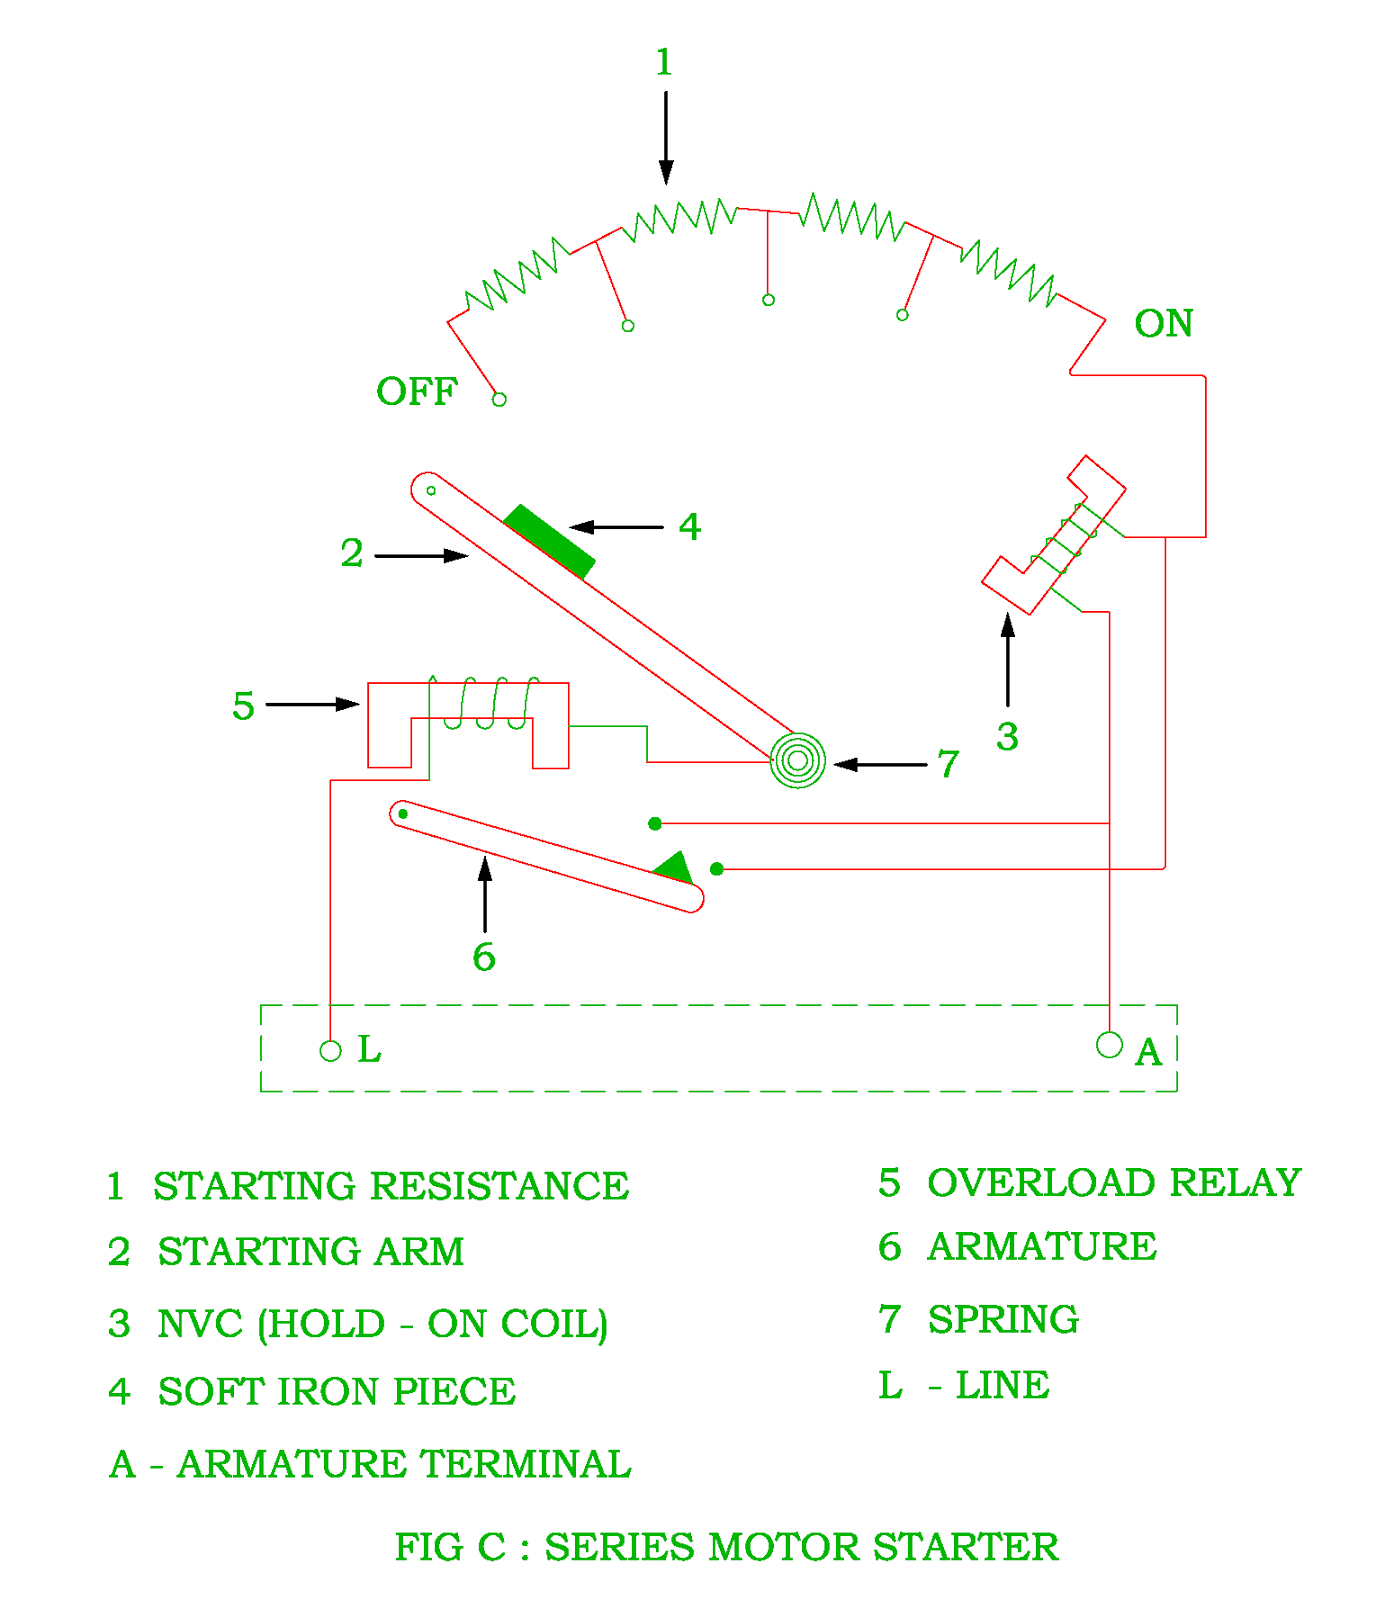 small resolution of figure b shows a four point starter with internal wiring diagram of a long shunt compound motor